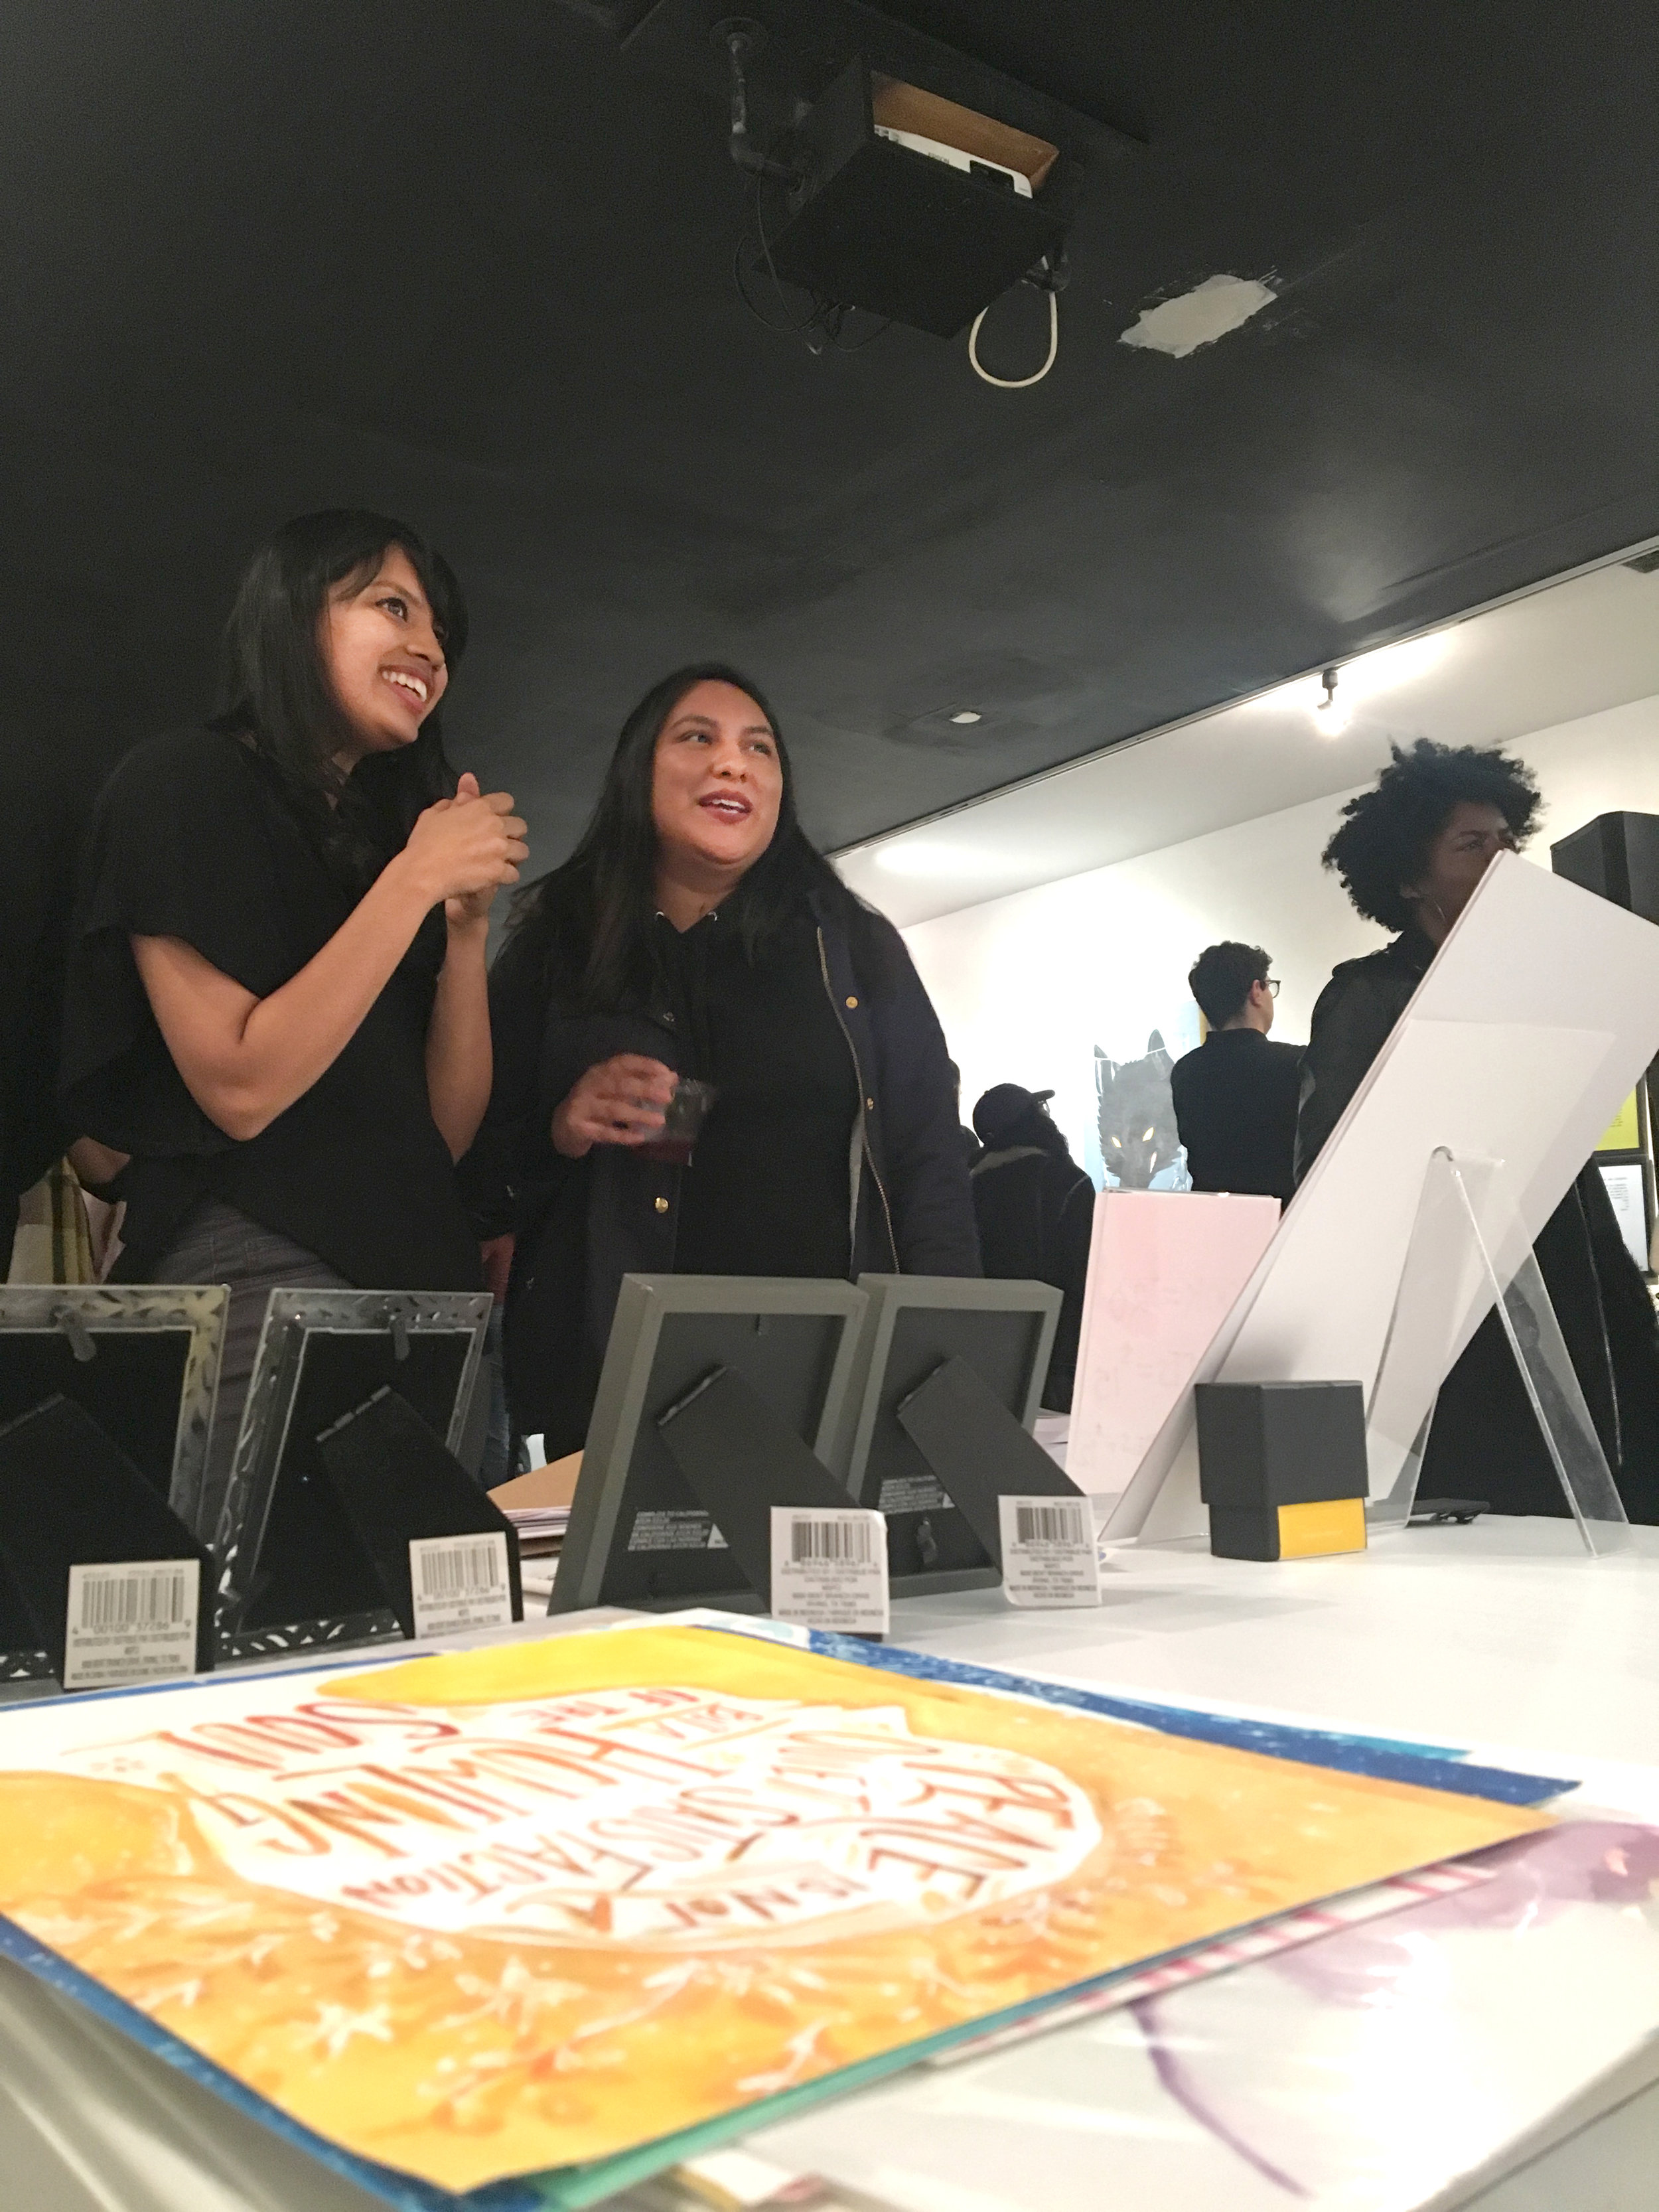 Artist enthusiastically shares her work to a gallery visitor